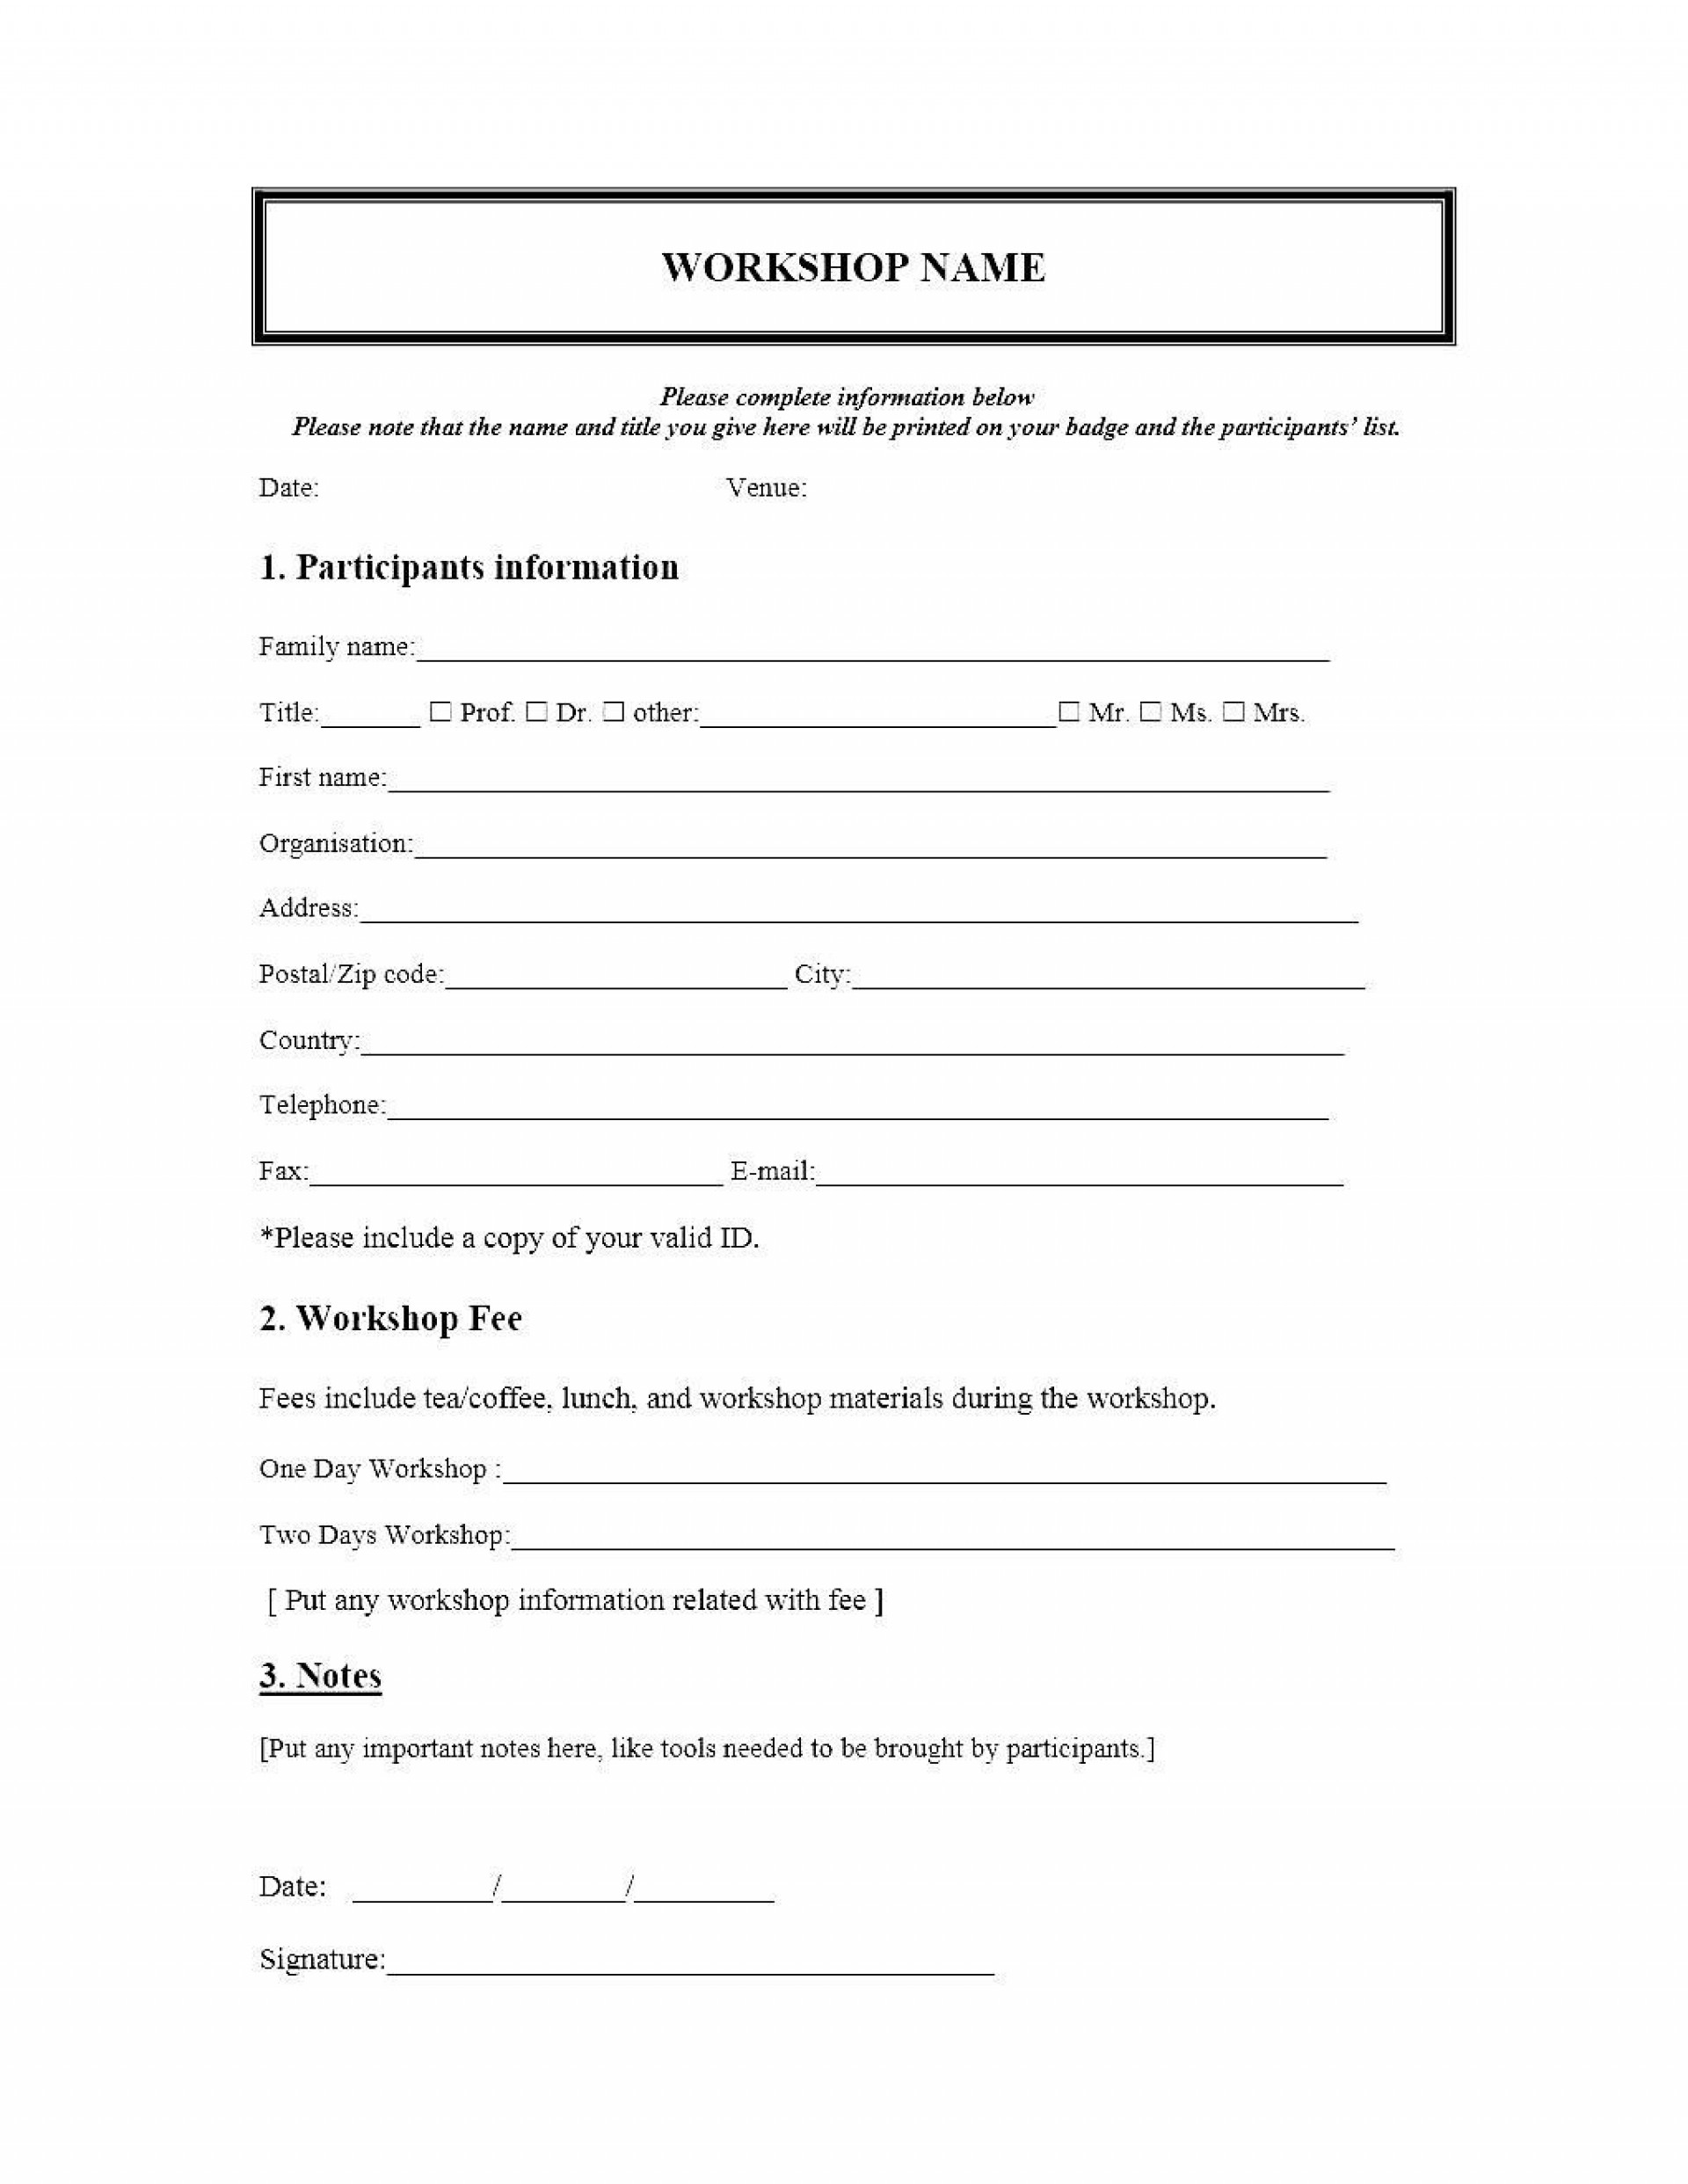 007 Excellent Event Registration Form Template Photo  Word Excel Microsoft1920